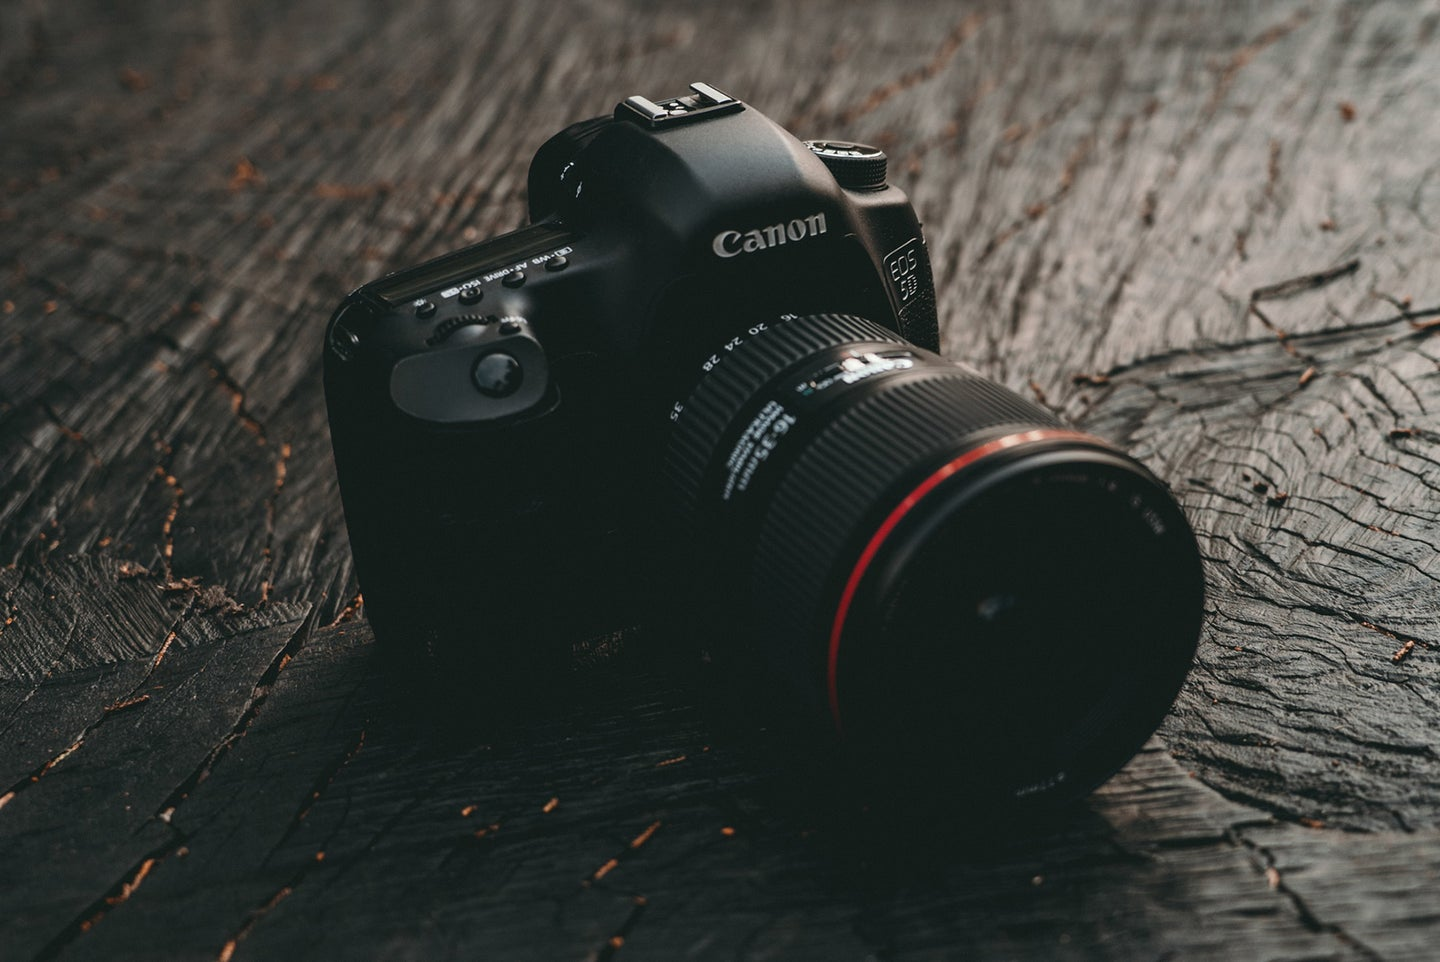 canon camera on a textured wooden surface